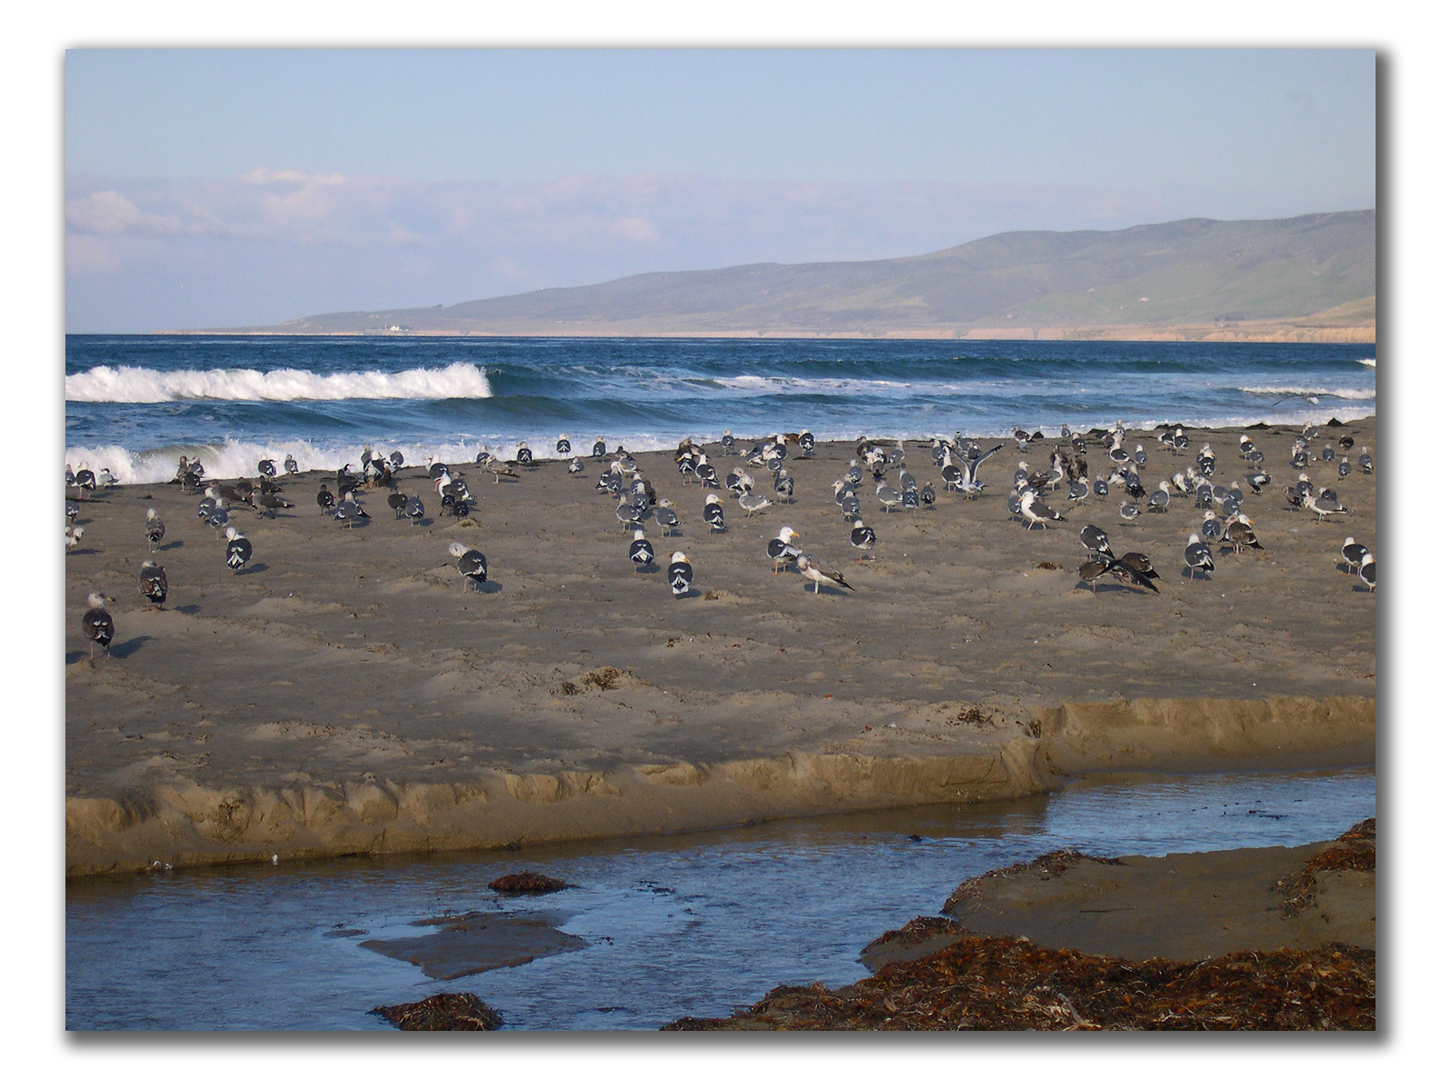 gulls spacing themselves evenly along the beach